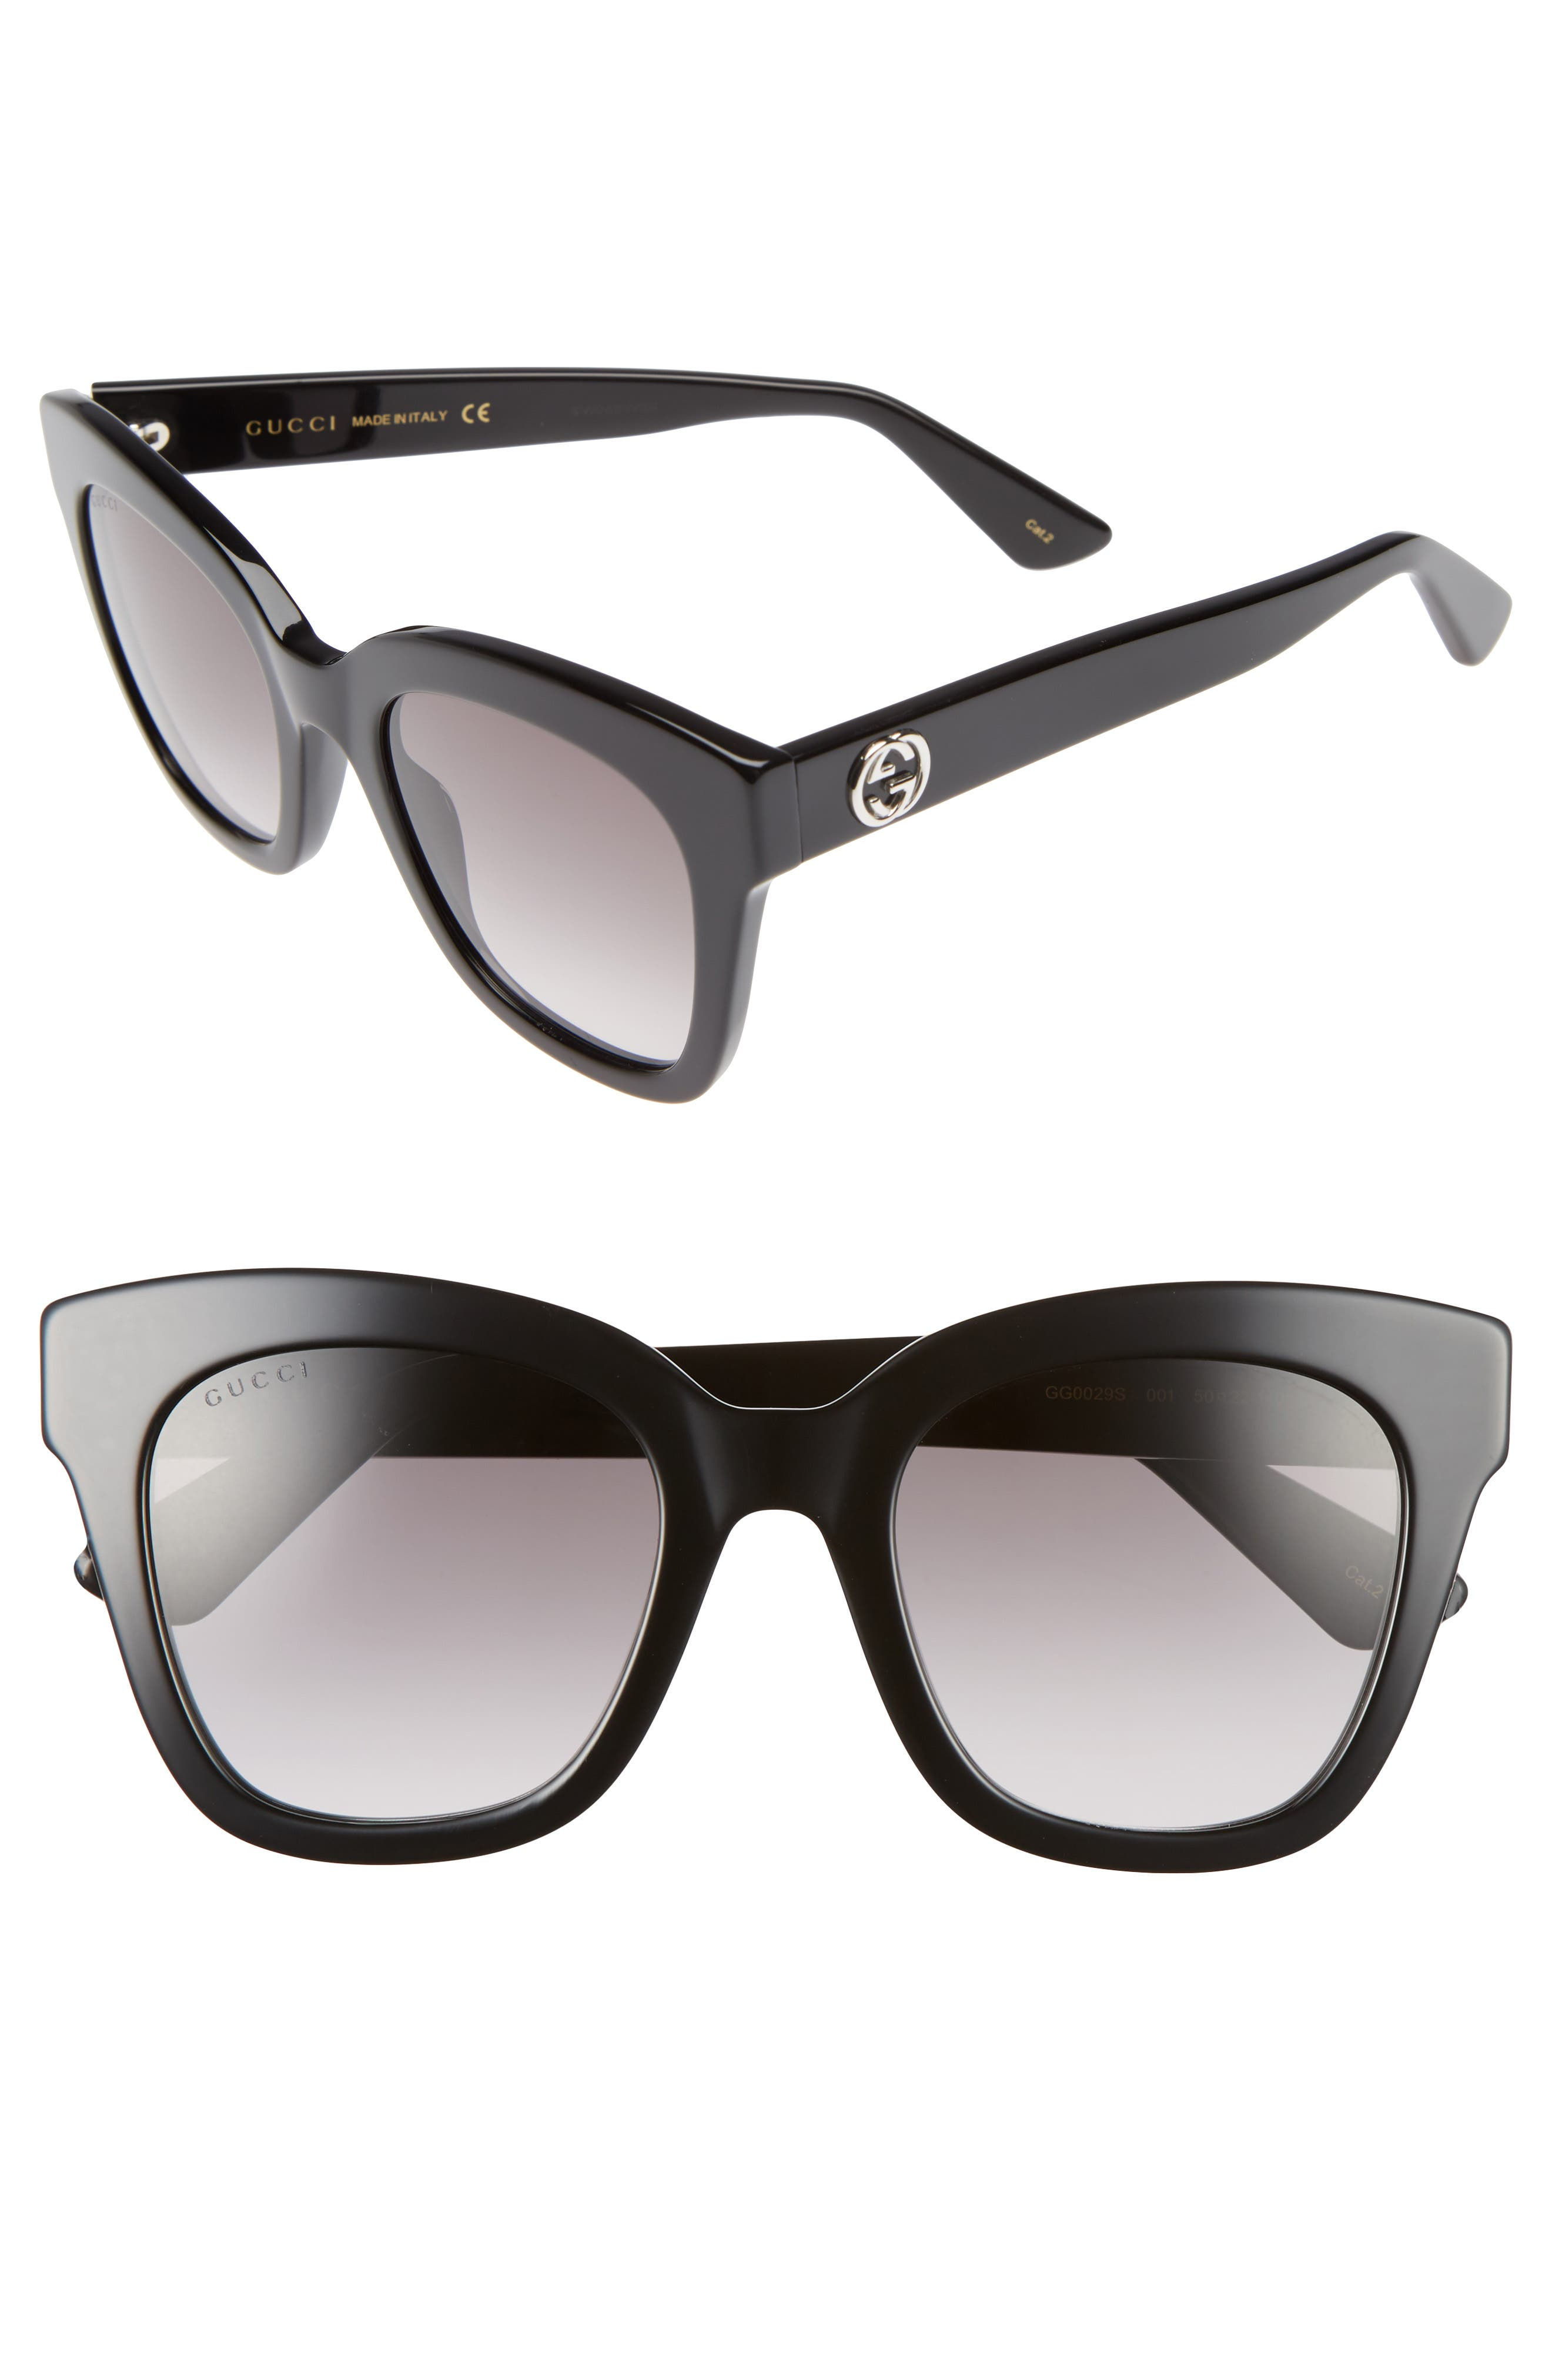 50mm Cat Eye Sunglasses,                         Main,                         color, 001